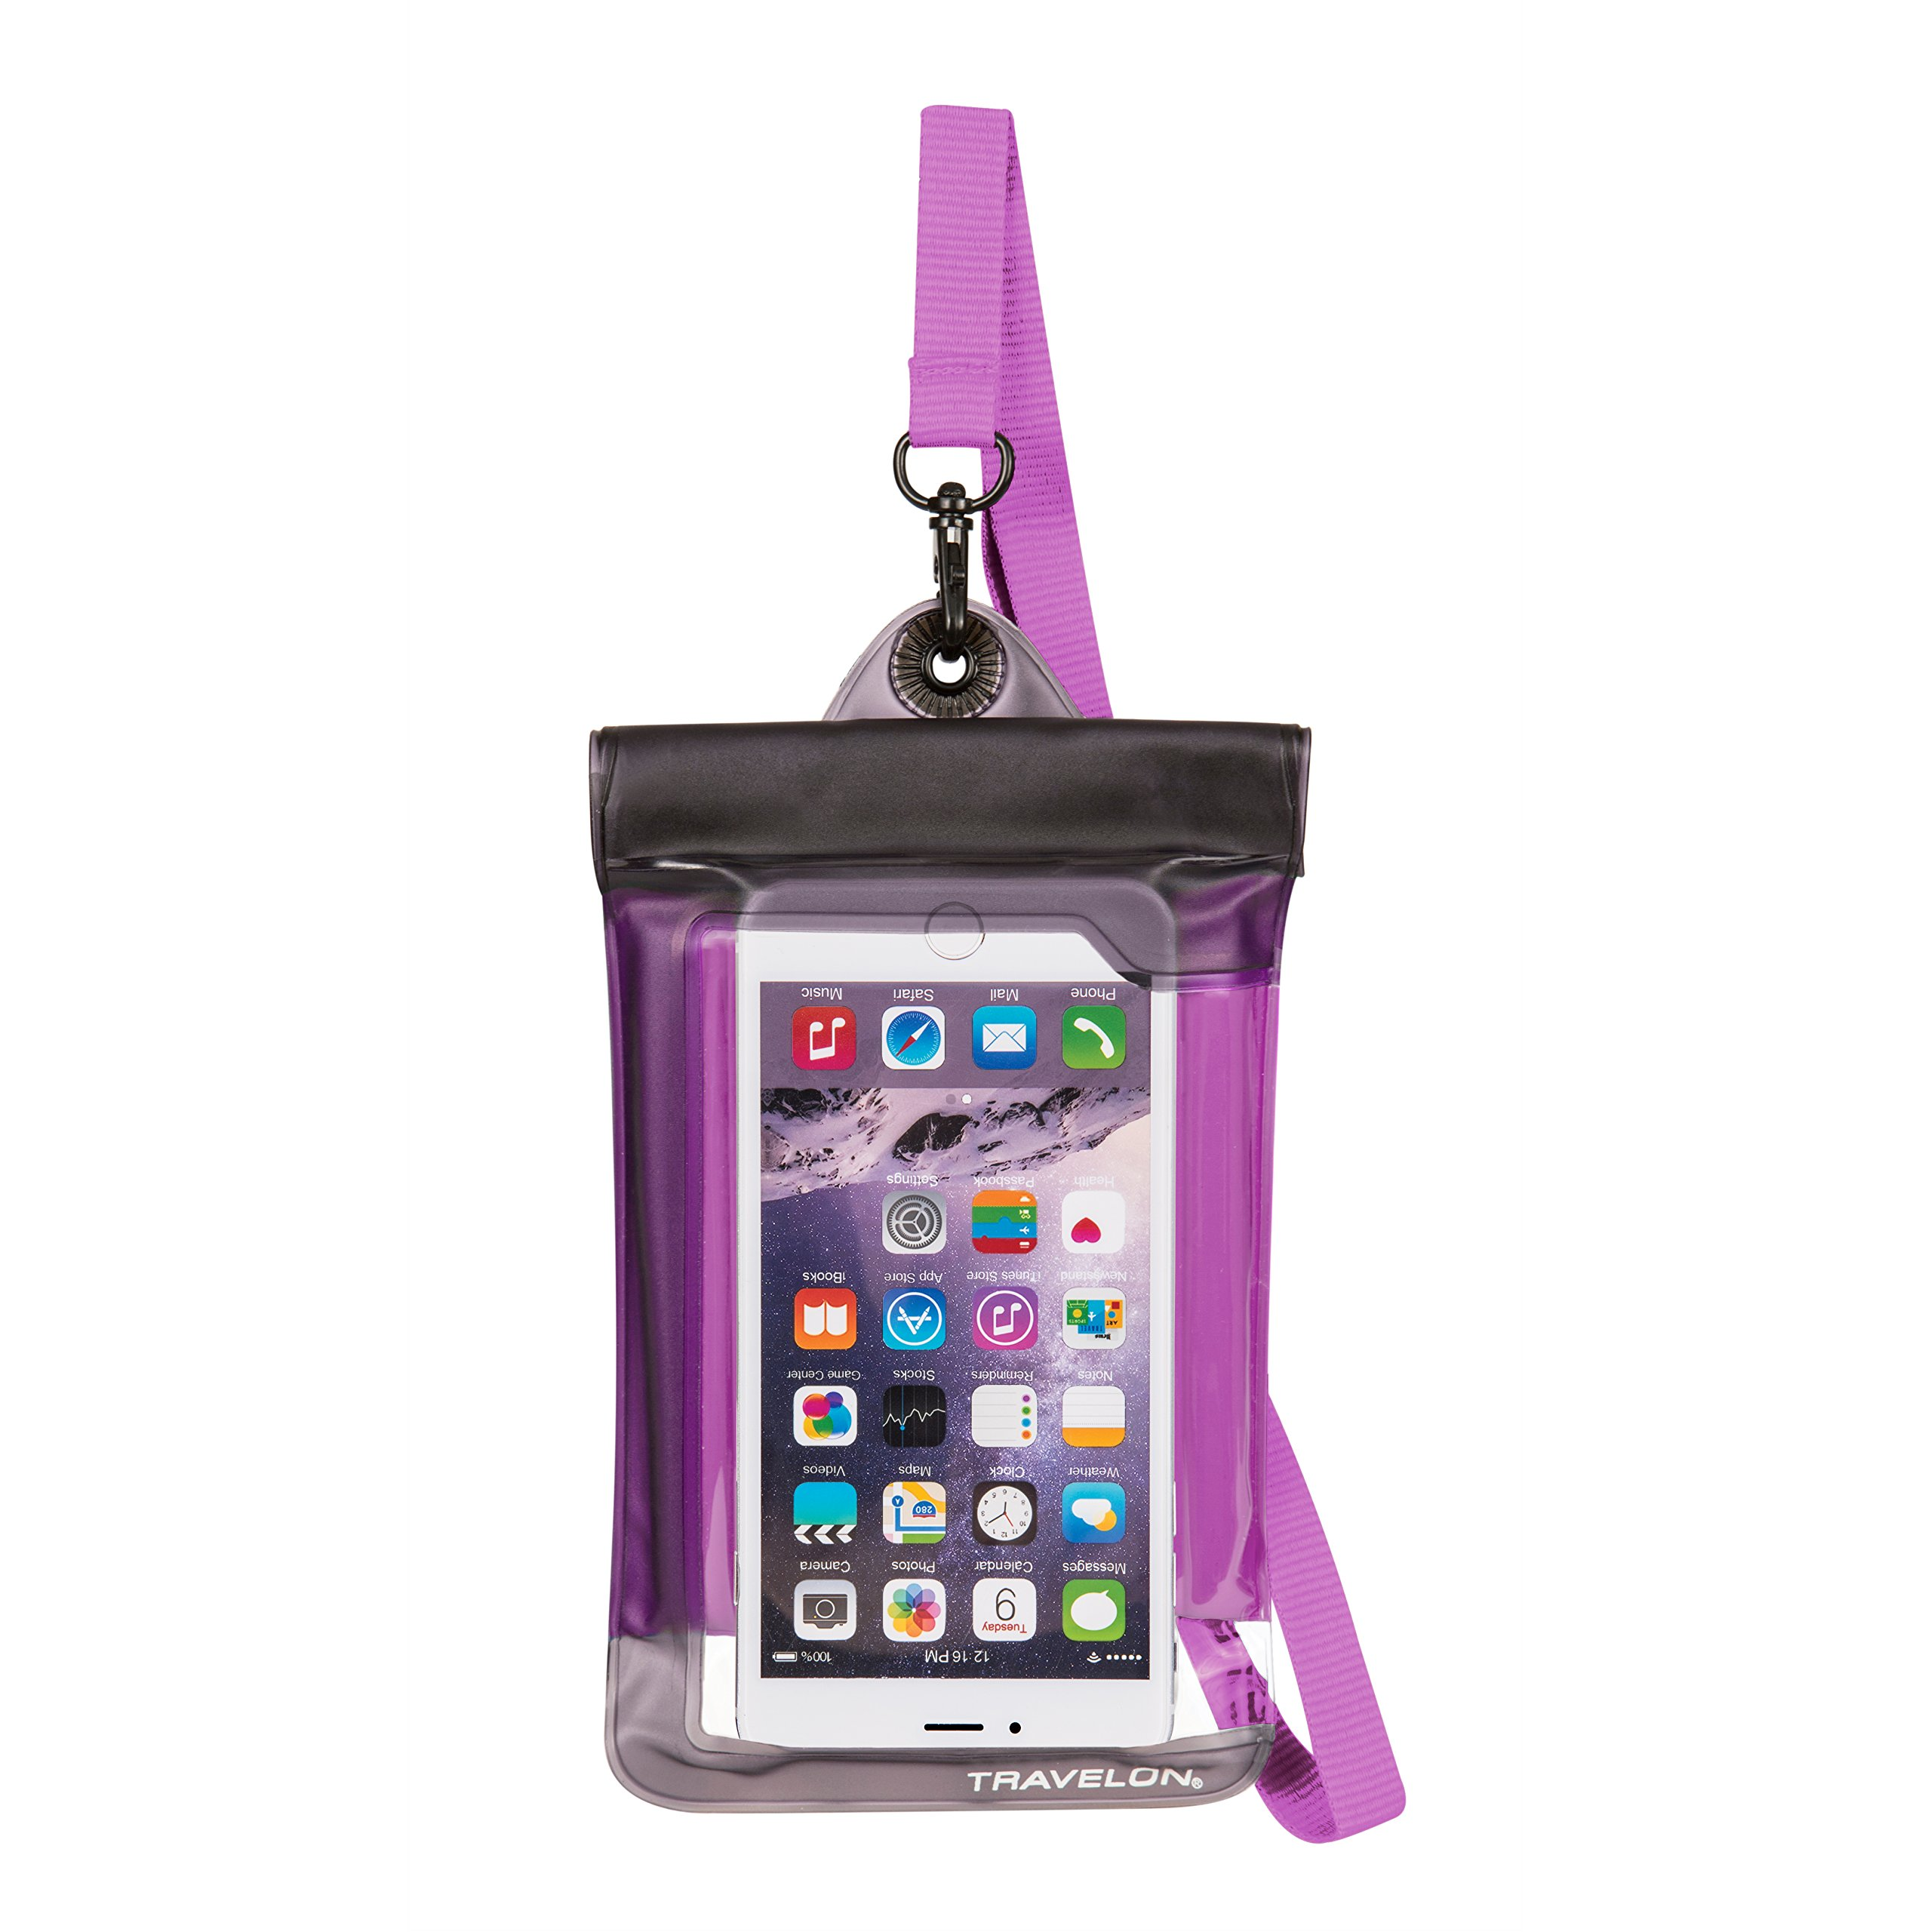 Travelon Floating Waterproof Smart Phone/Digital Camera Pouch, Purple by Travelon